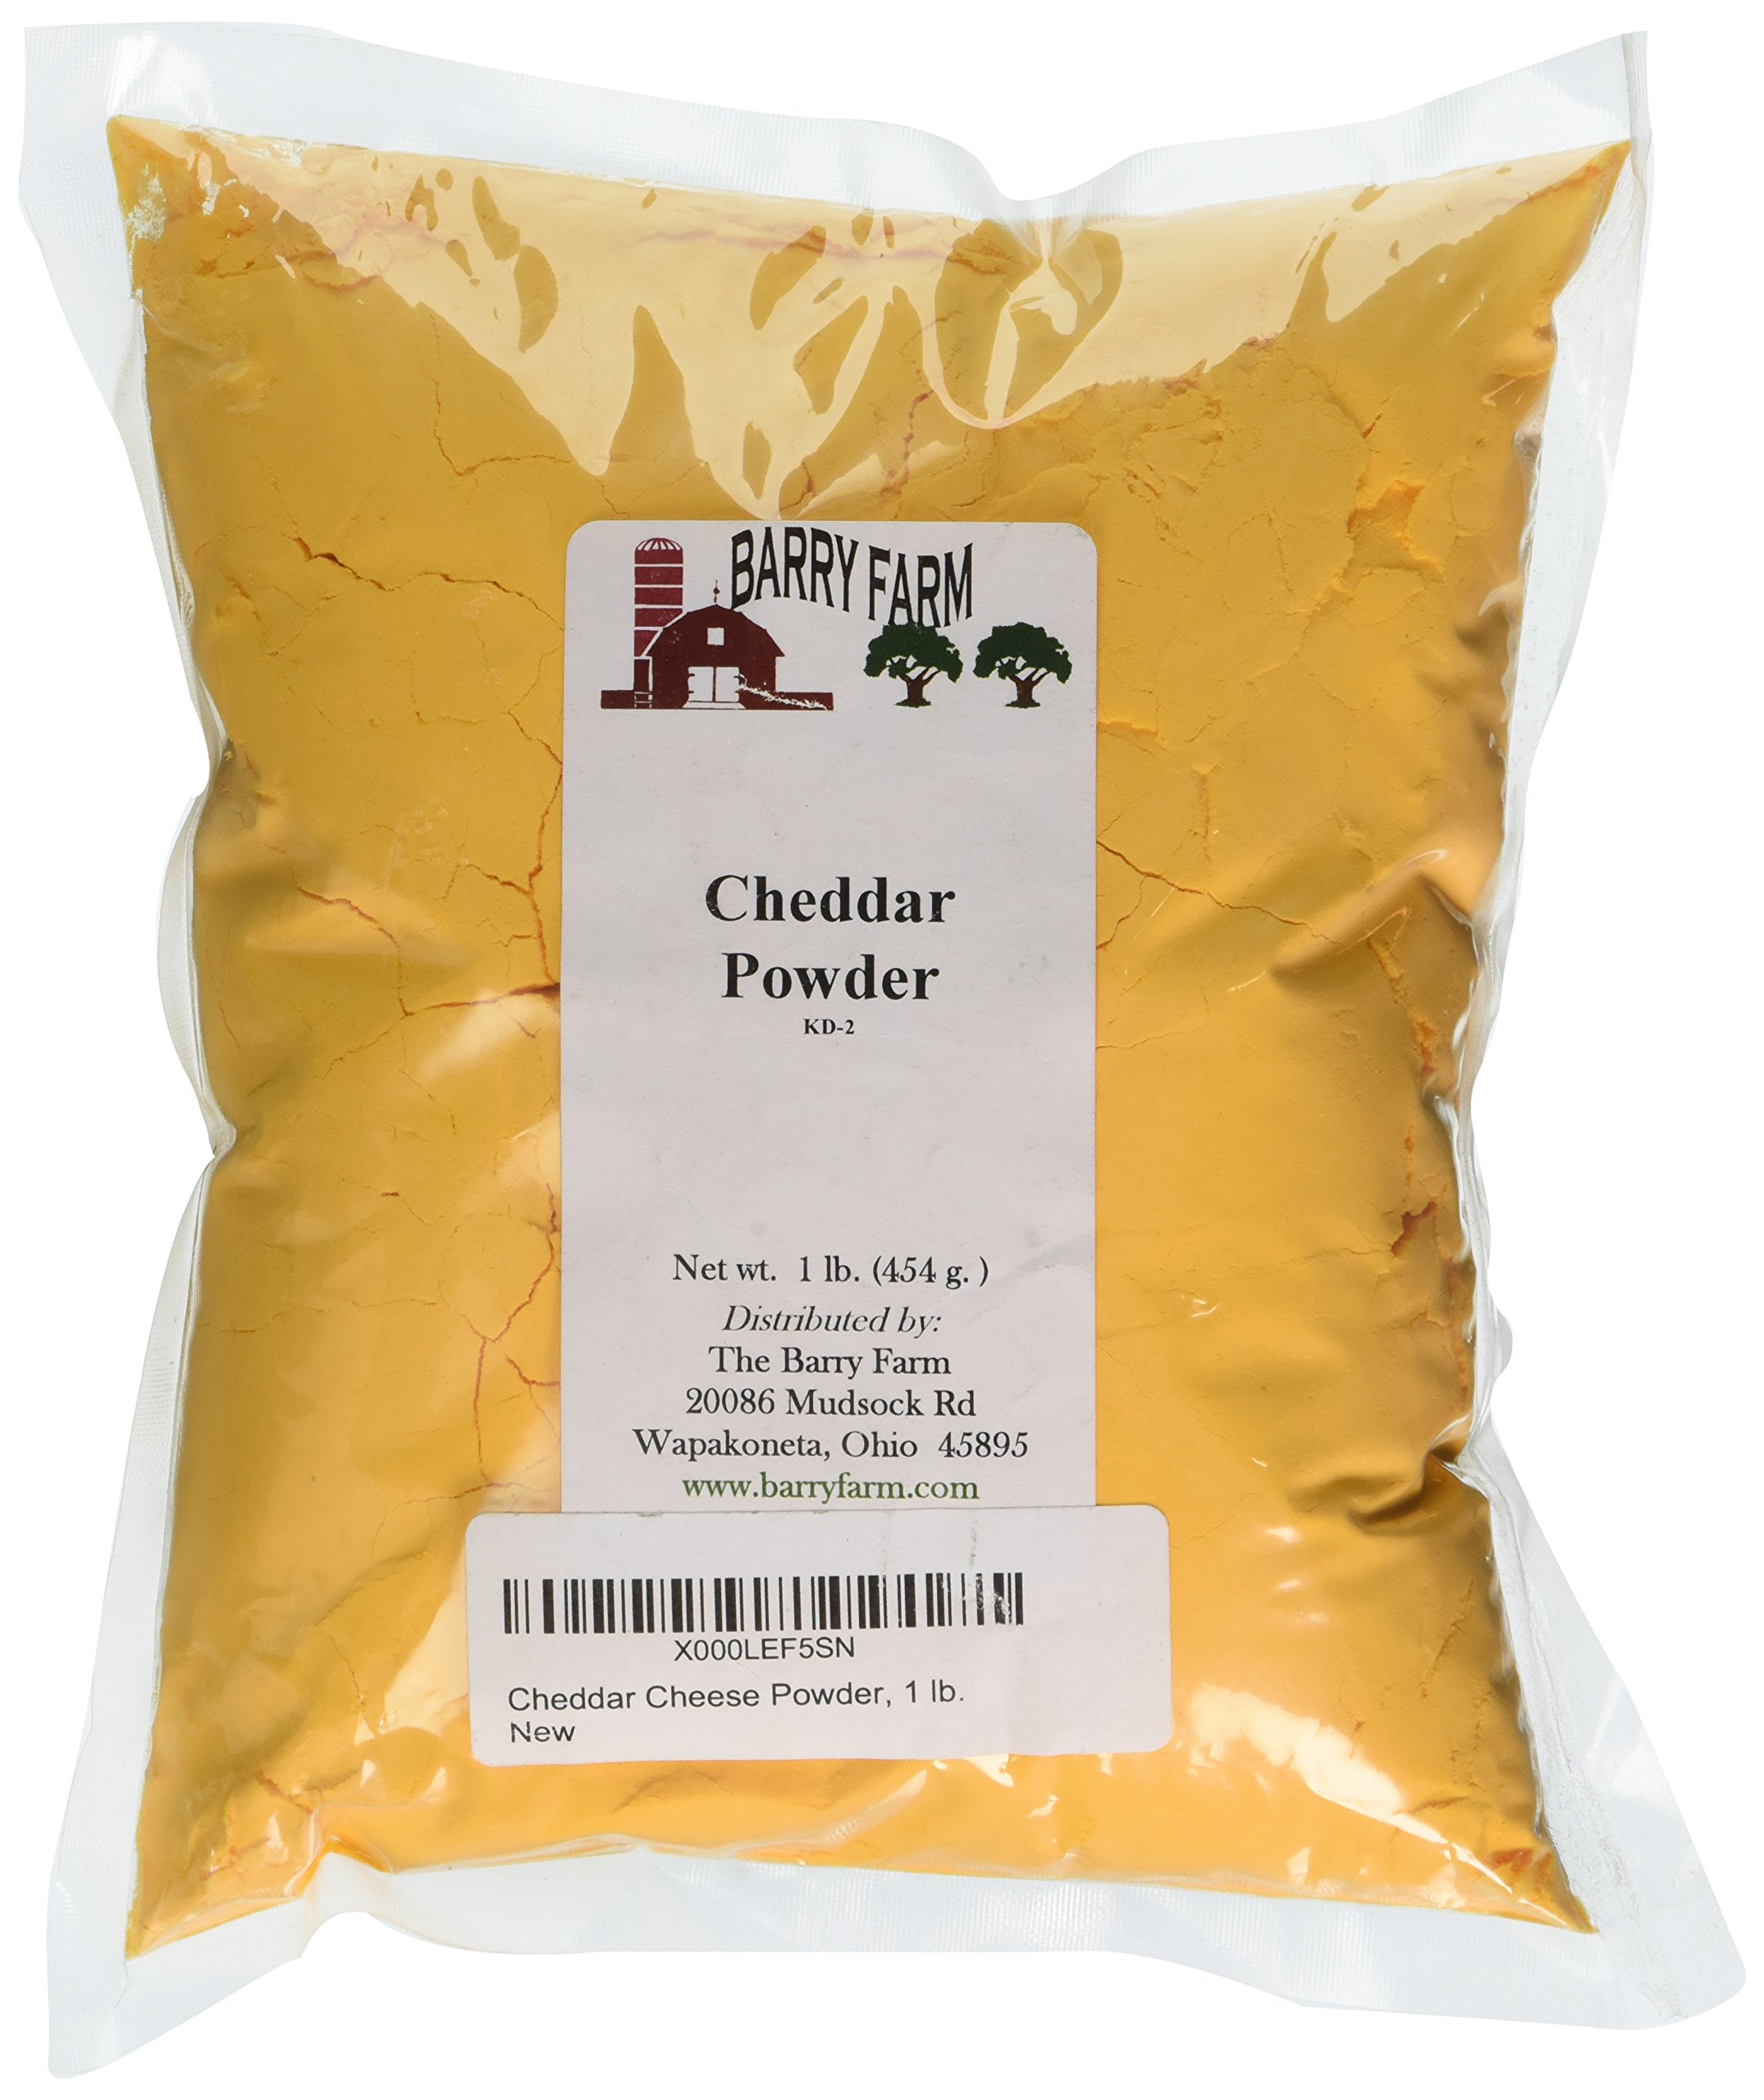 Cheddar Cheese Powder, 1 lb. by Barry Farm by Barry Farm (Image #1)